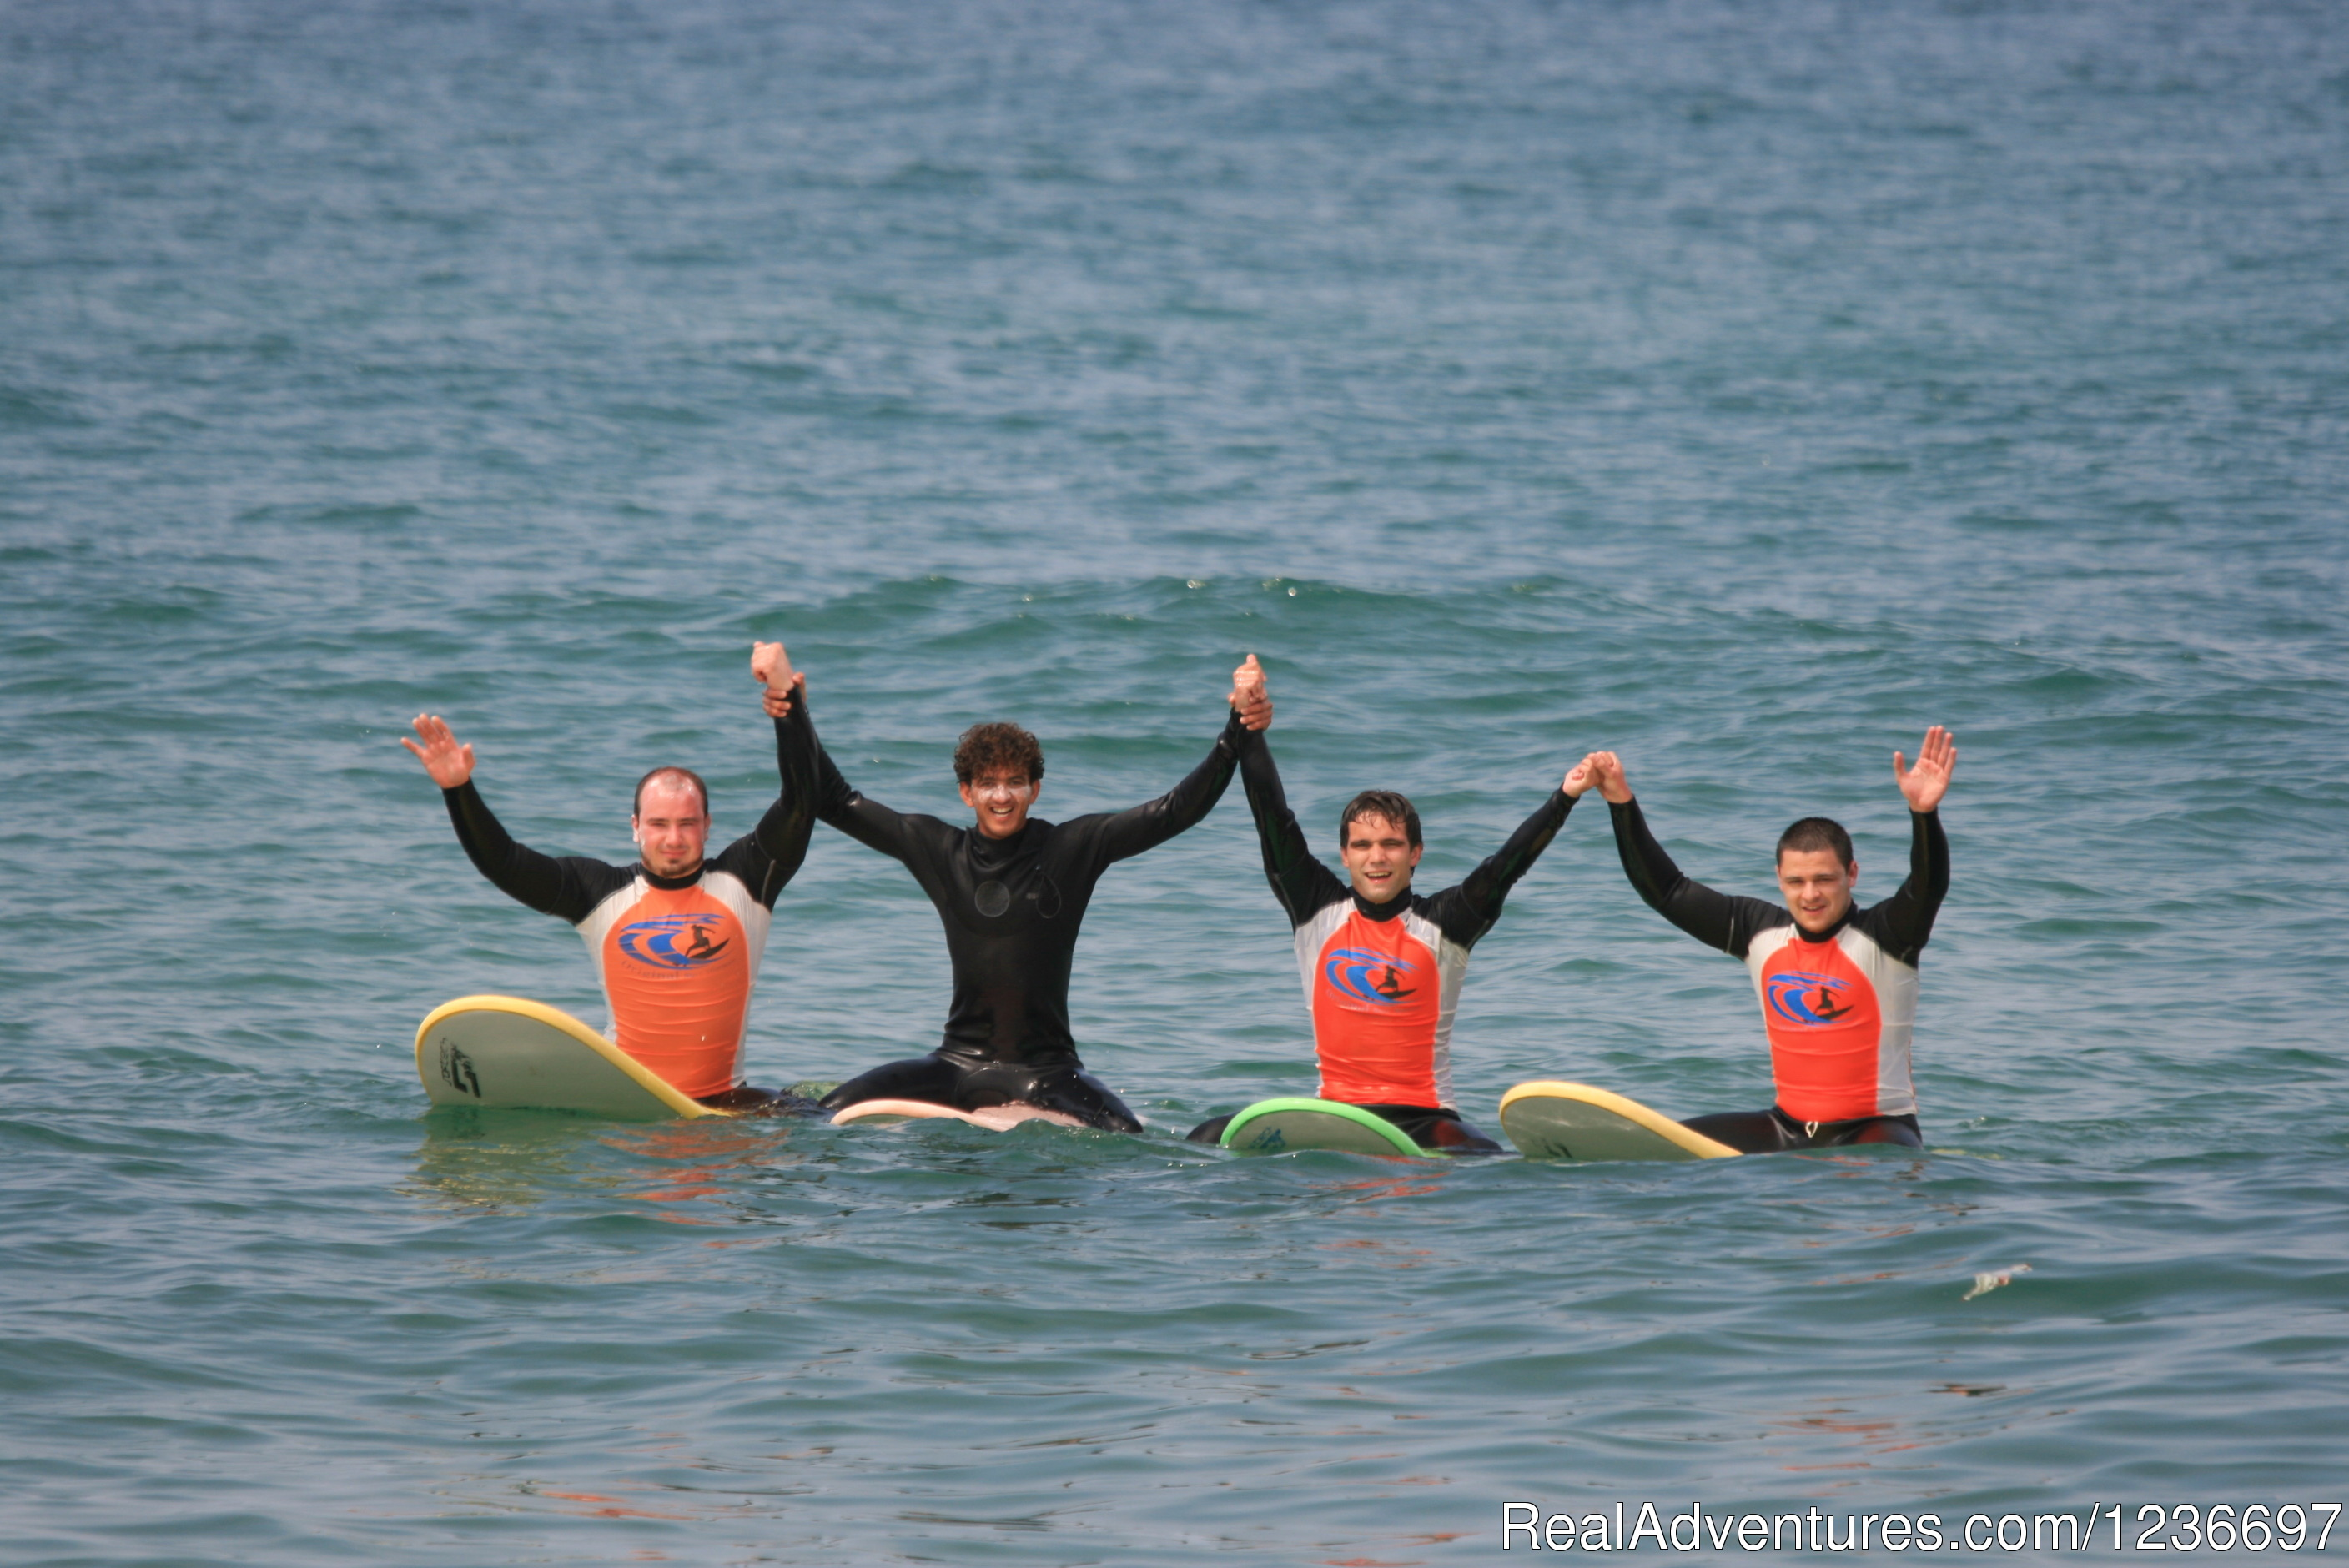 Memorable surf experience waiting for you